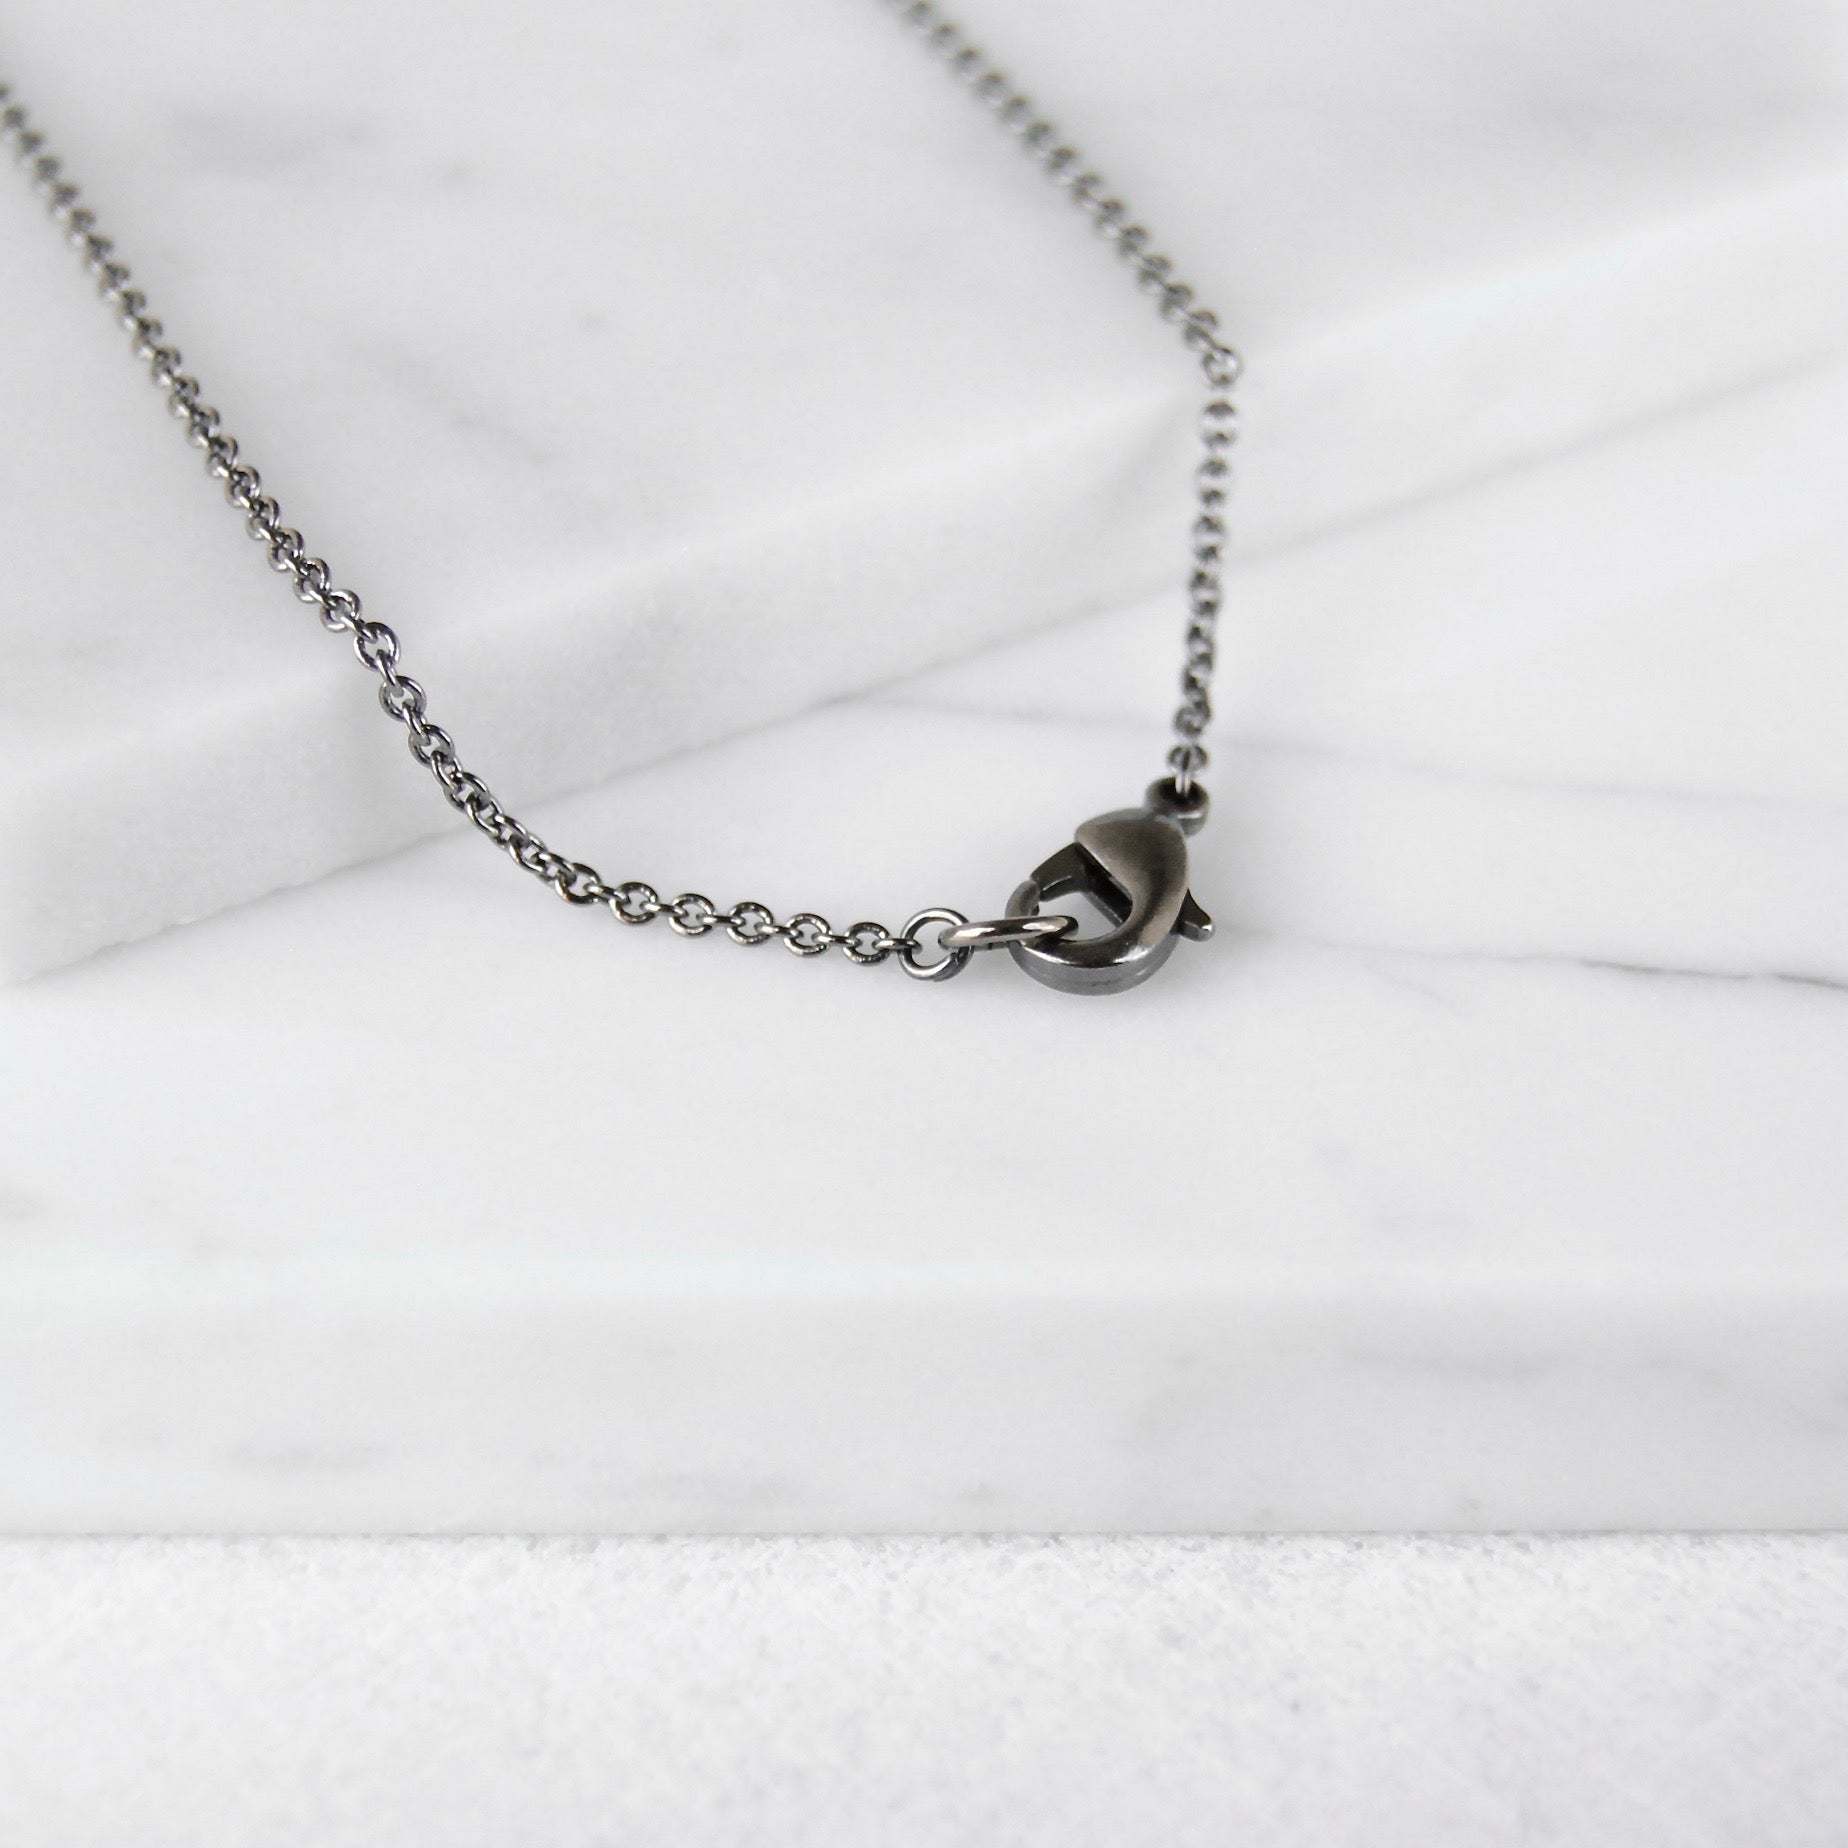 LONG WHISTLE NECKLACE